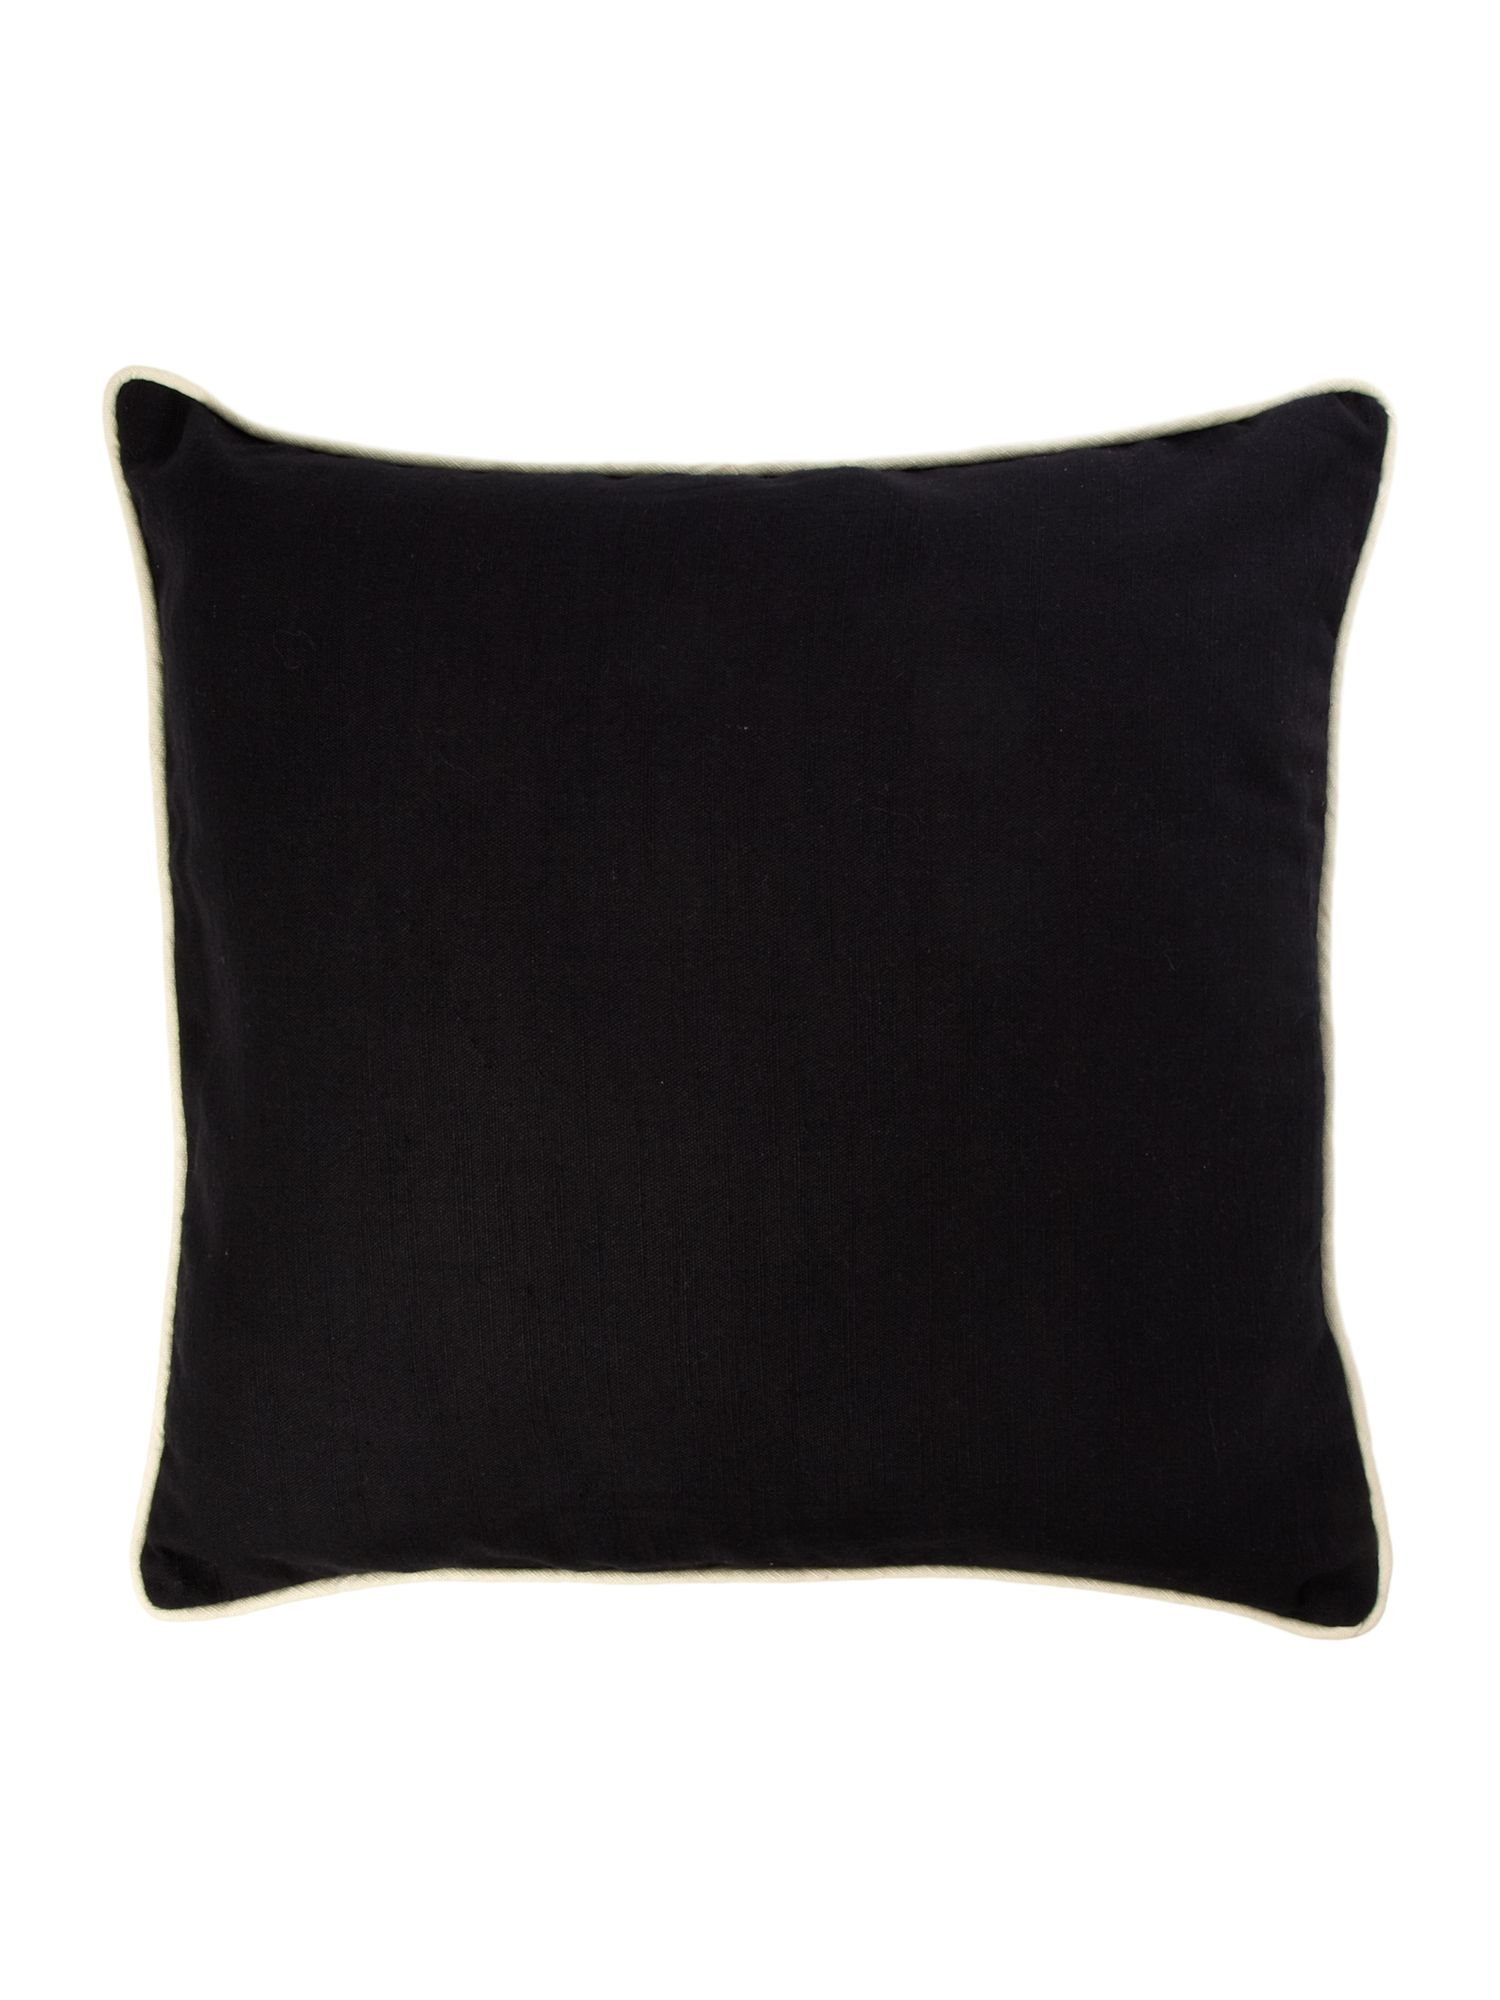 Black cotton cushion with contrast piping